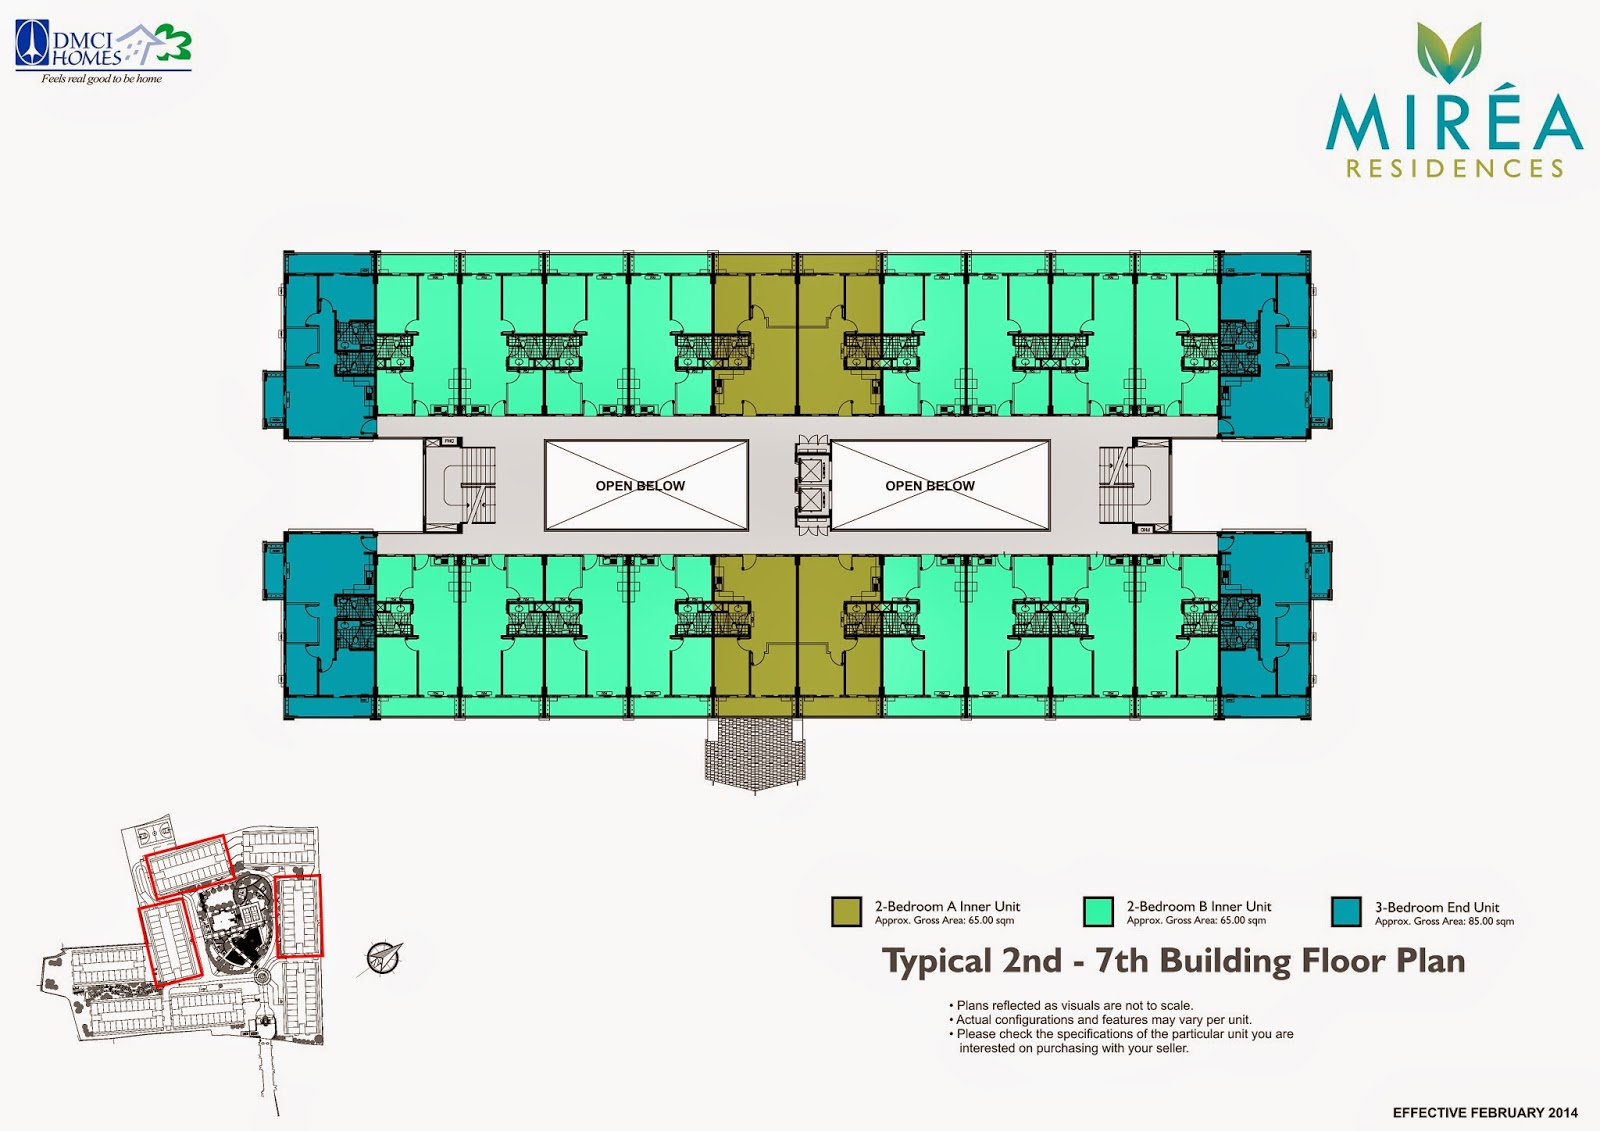 Mirea Residences 2nd - 7th Floor Plan